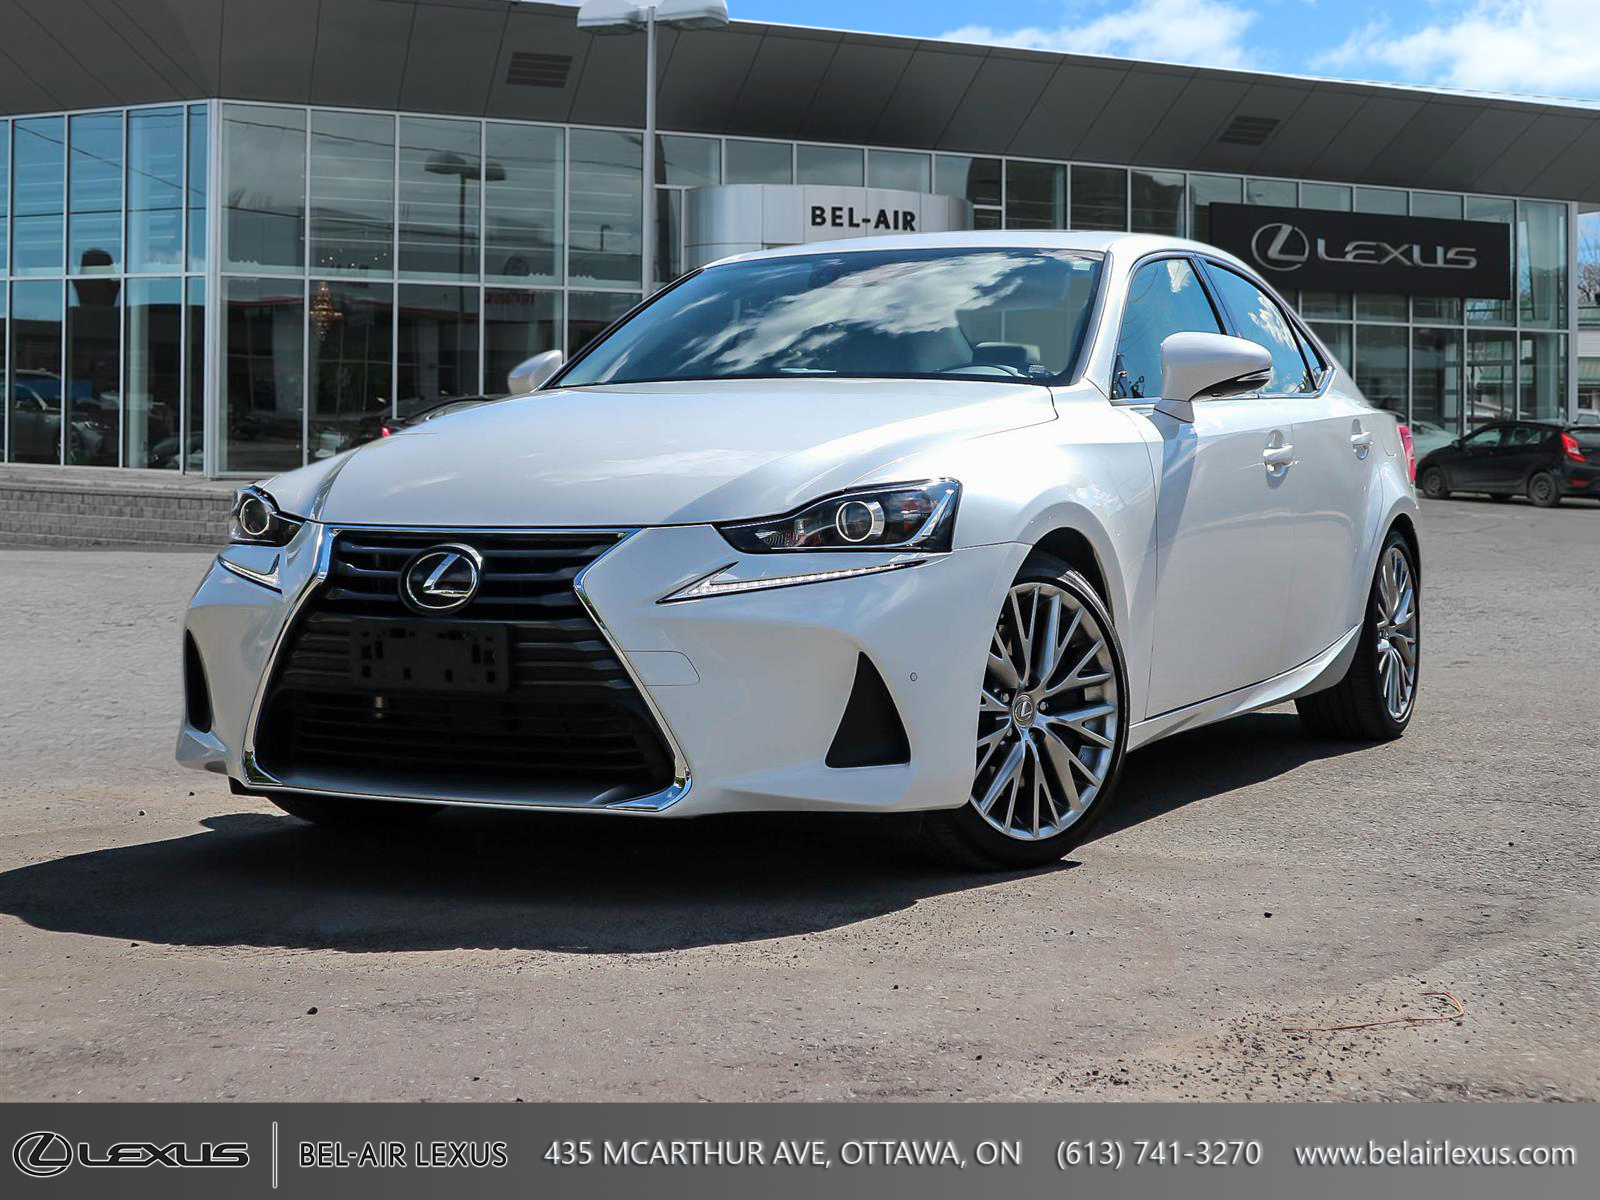 2018 Lexus IS 300 at Bel-Air Lexus